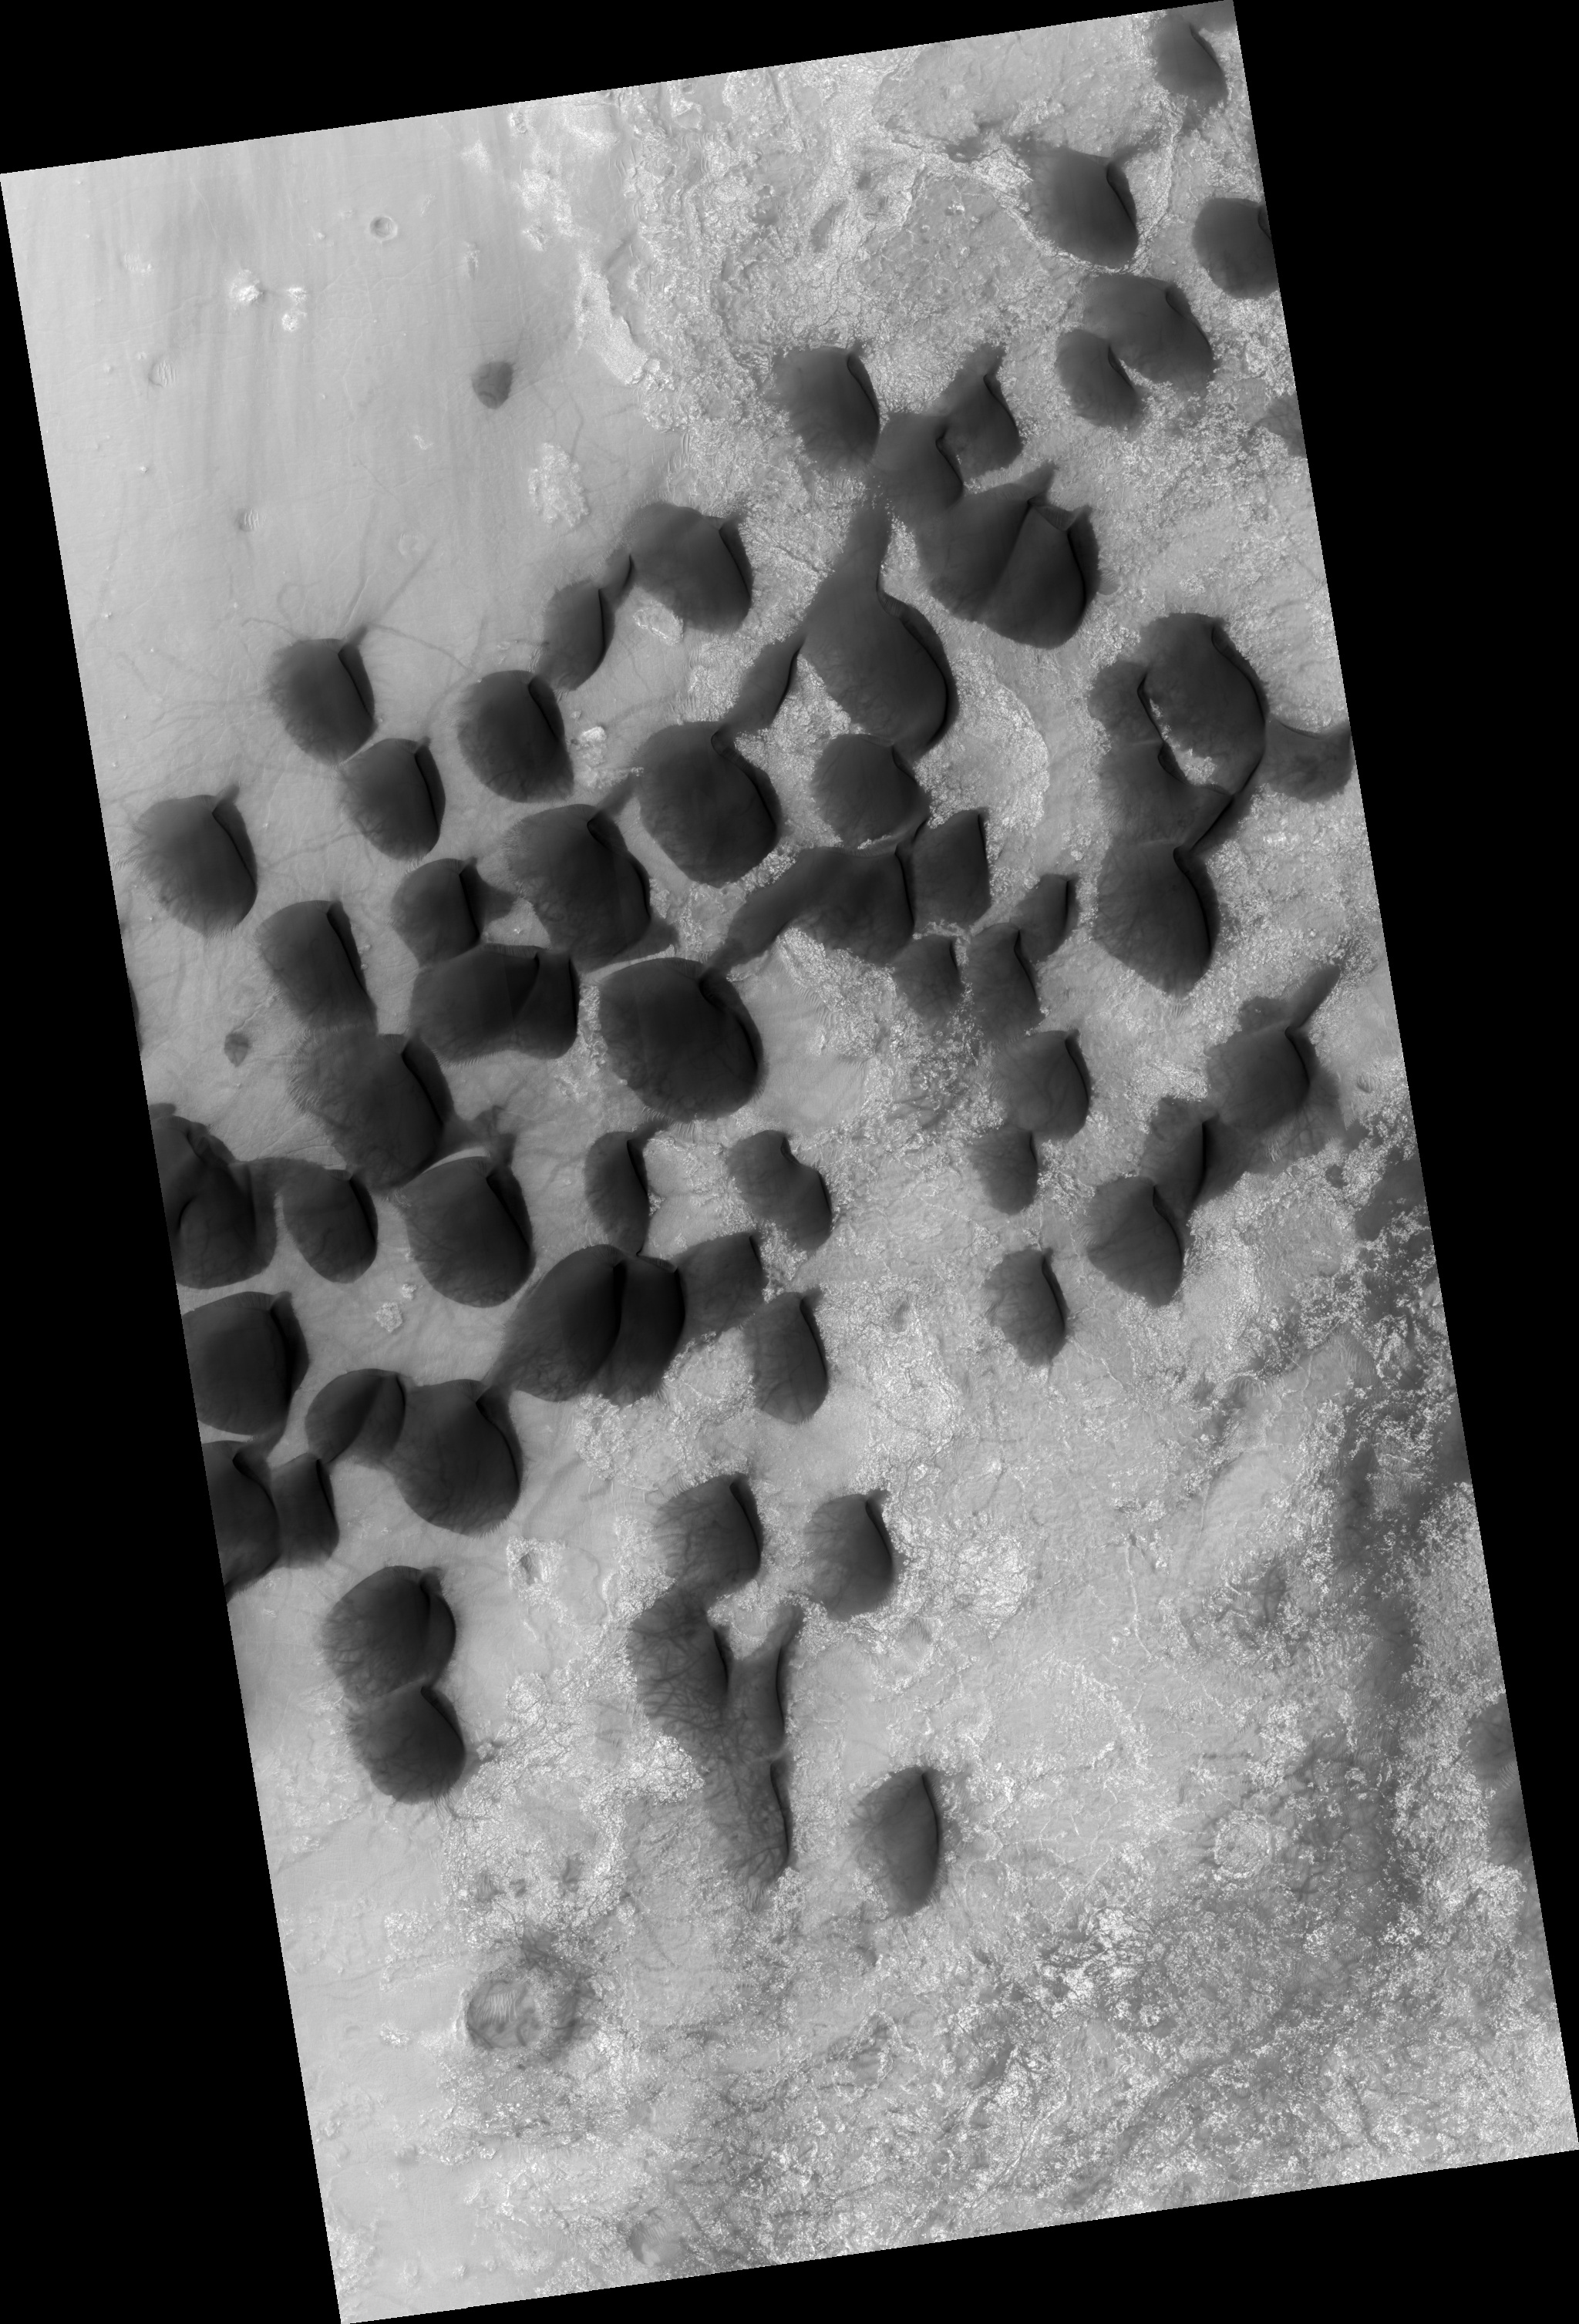 http://photojournal.jpl.nasa.gov/figures/PIA12289_fig1.jpg